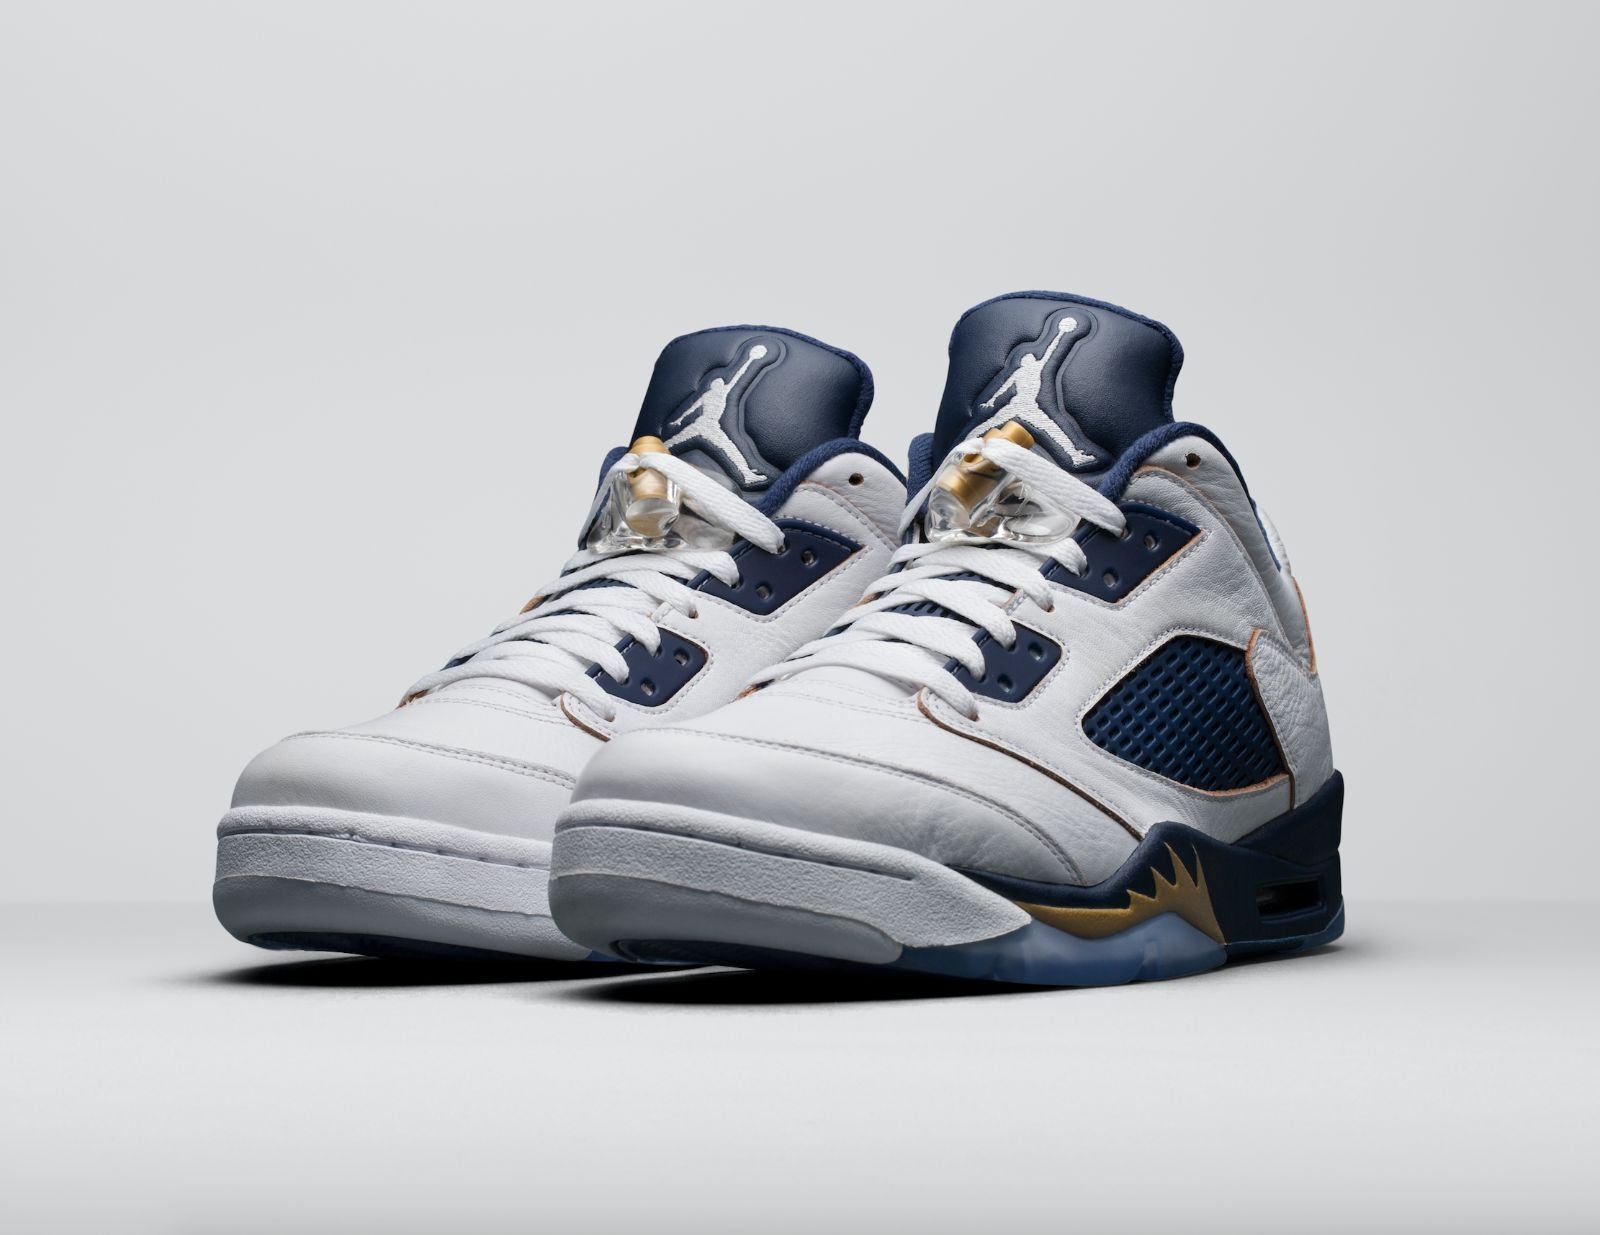 Nike Air Jordan 5 V low size 10.5. Dunk from Above. White Navy Gold. 819171-135 Wild casual shoes